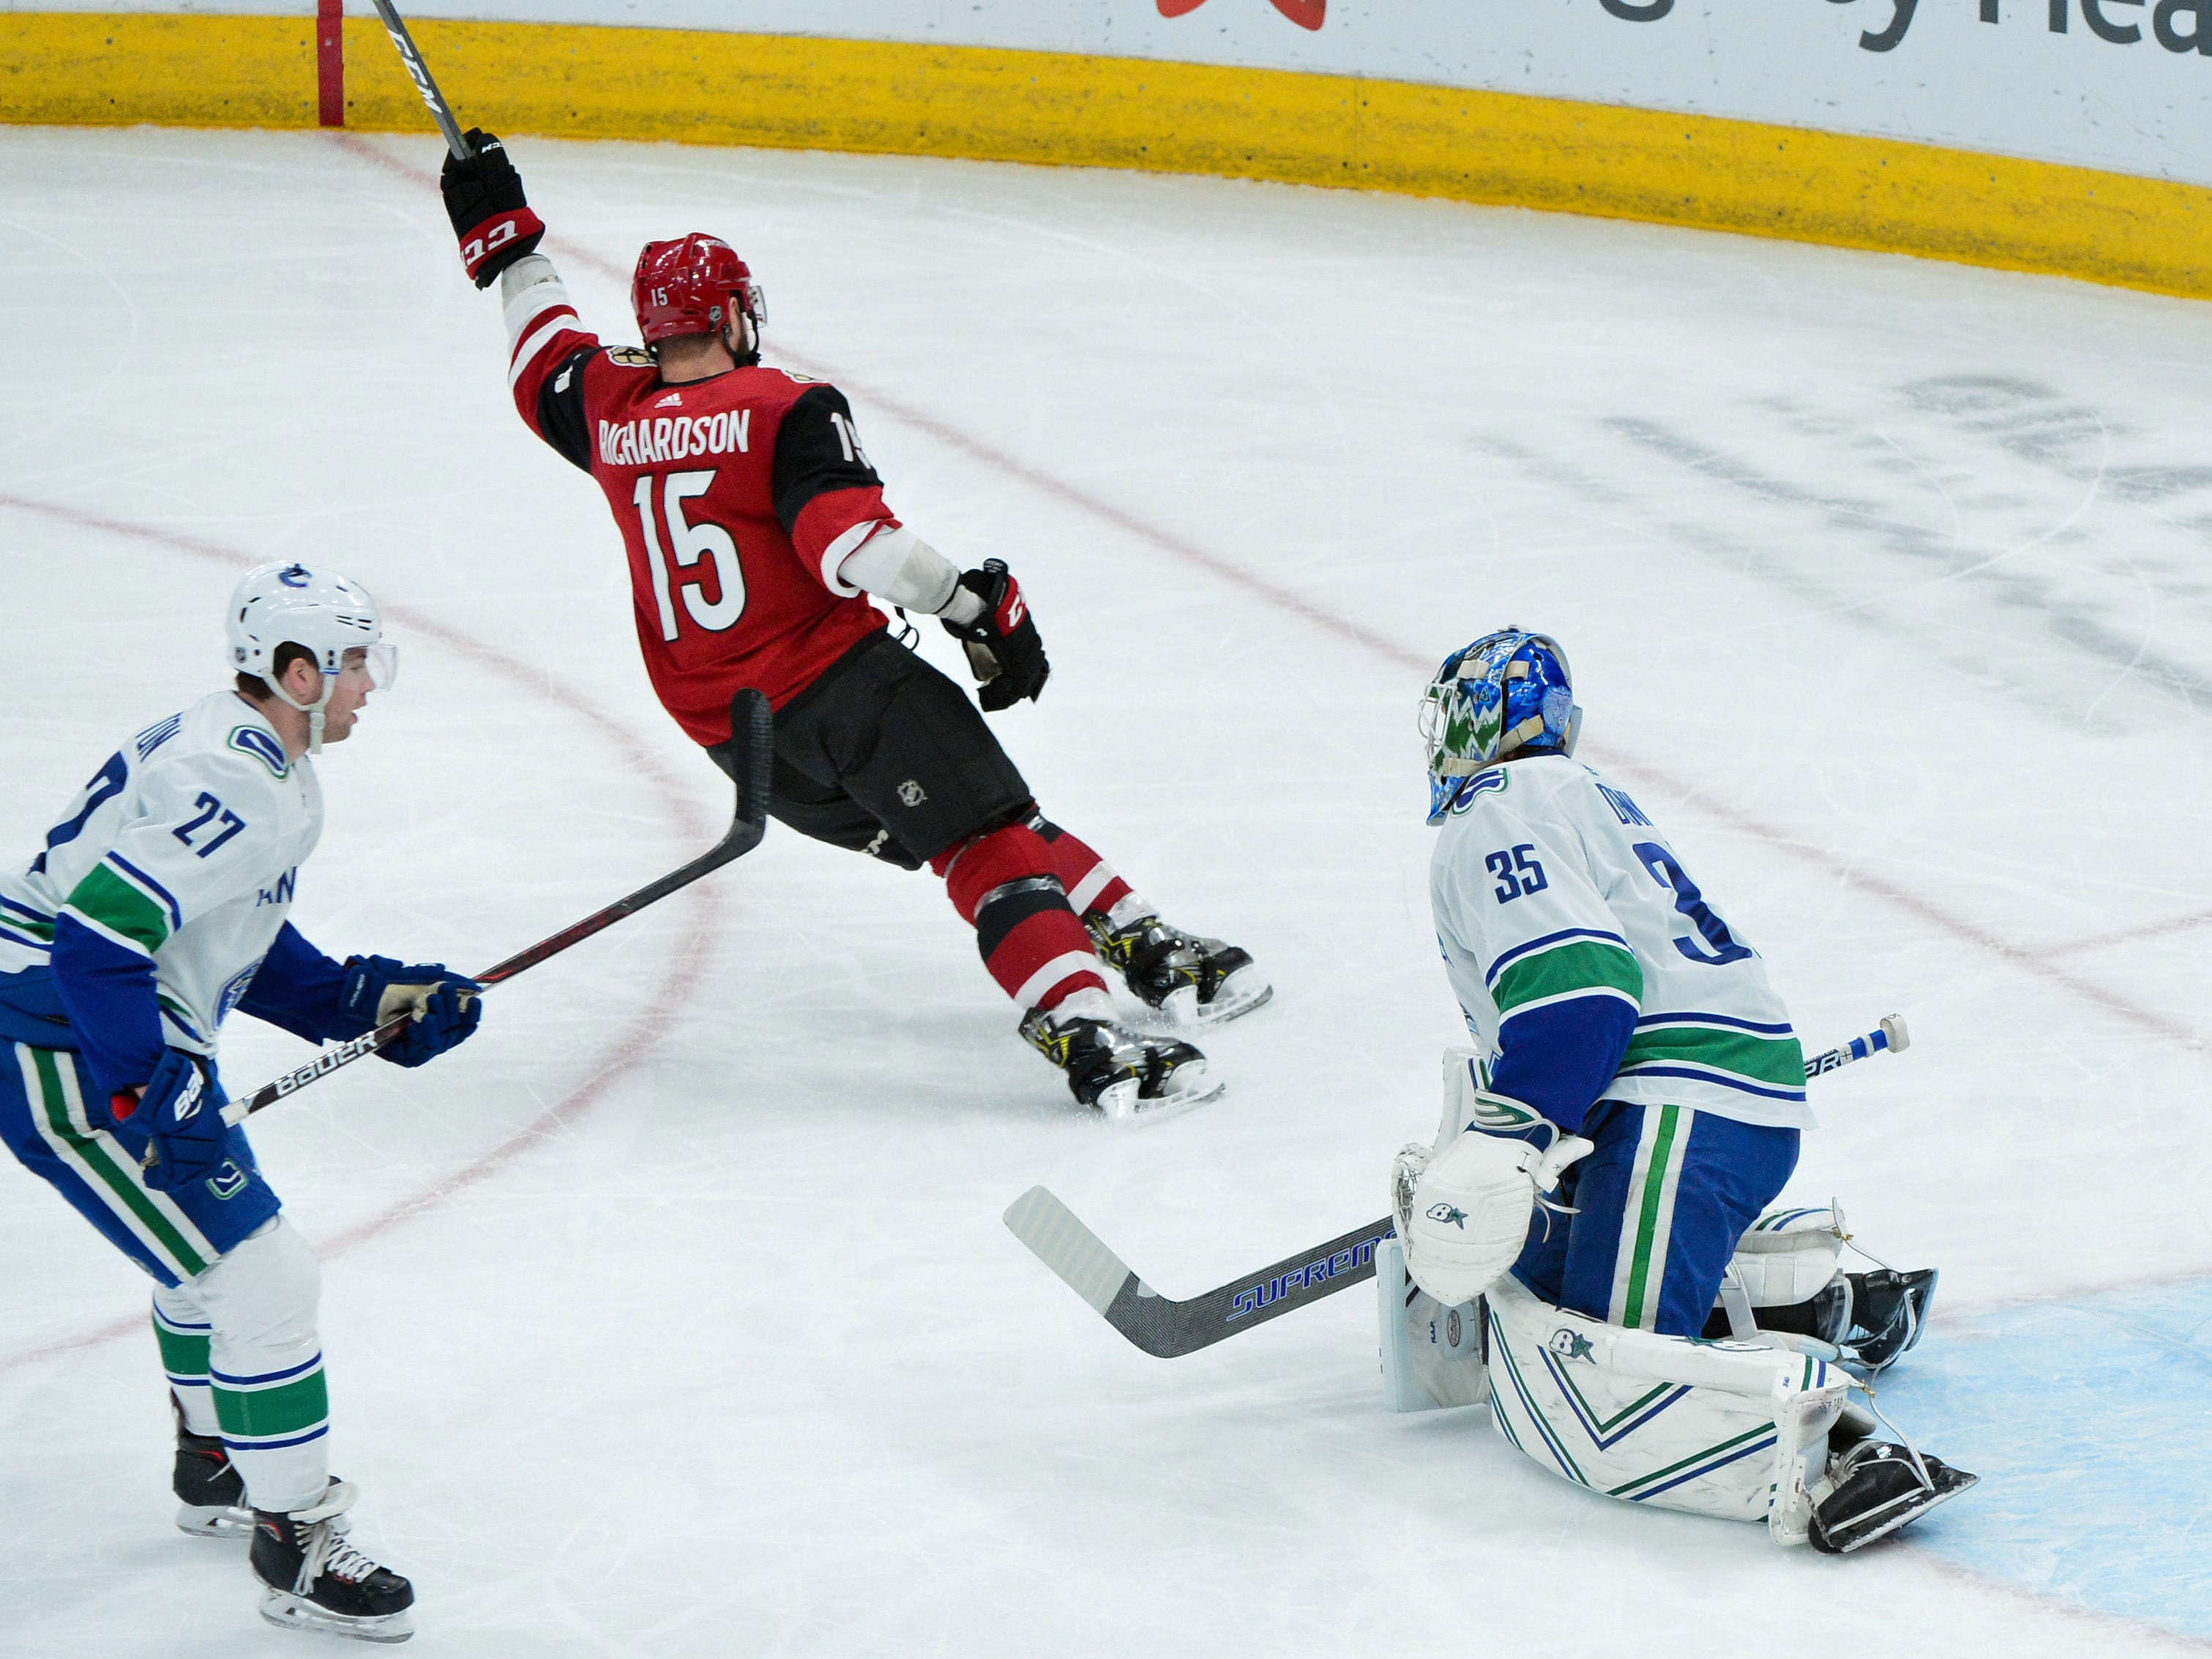 Feb 28, 2019; Glendale, AZ, USA; Arizona Coyotes center Brad Richardson (15) celebrates after scoring a goal past Vancouver Canucks goaltender Thatcher Demko (35) and defenseman Ben Hutton (27)  during the first period at Gila River Arena.